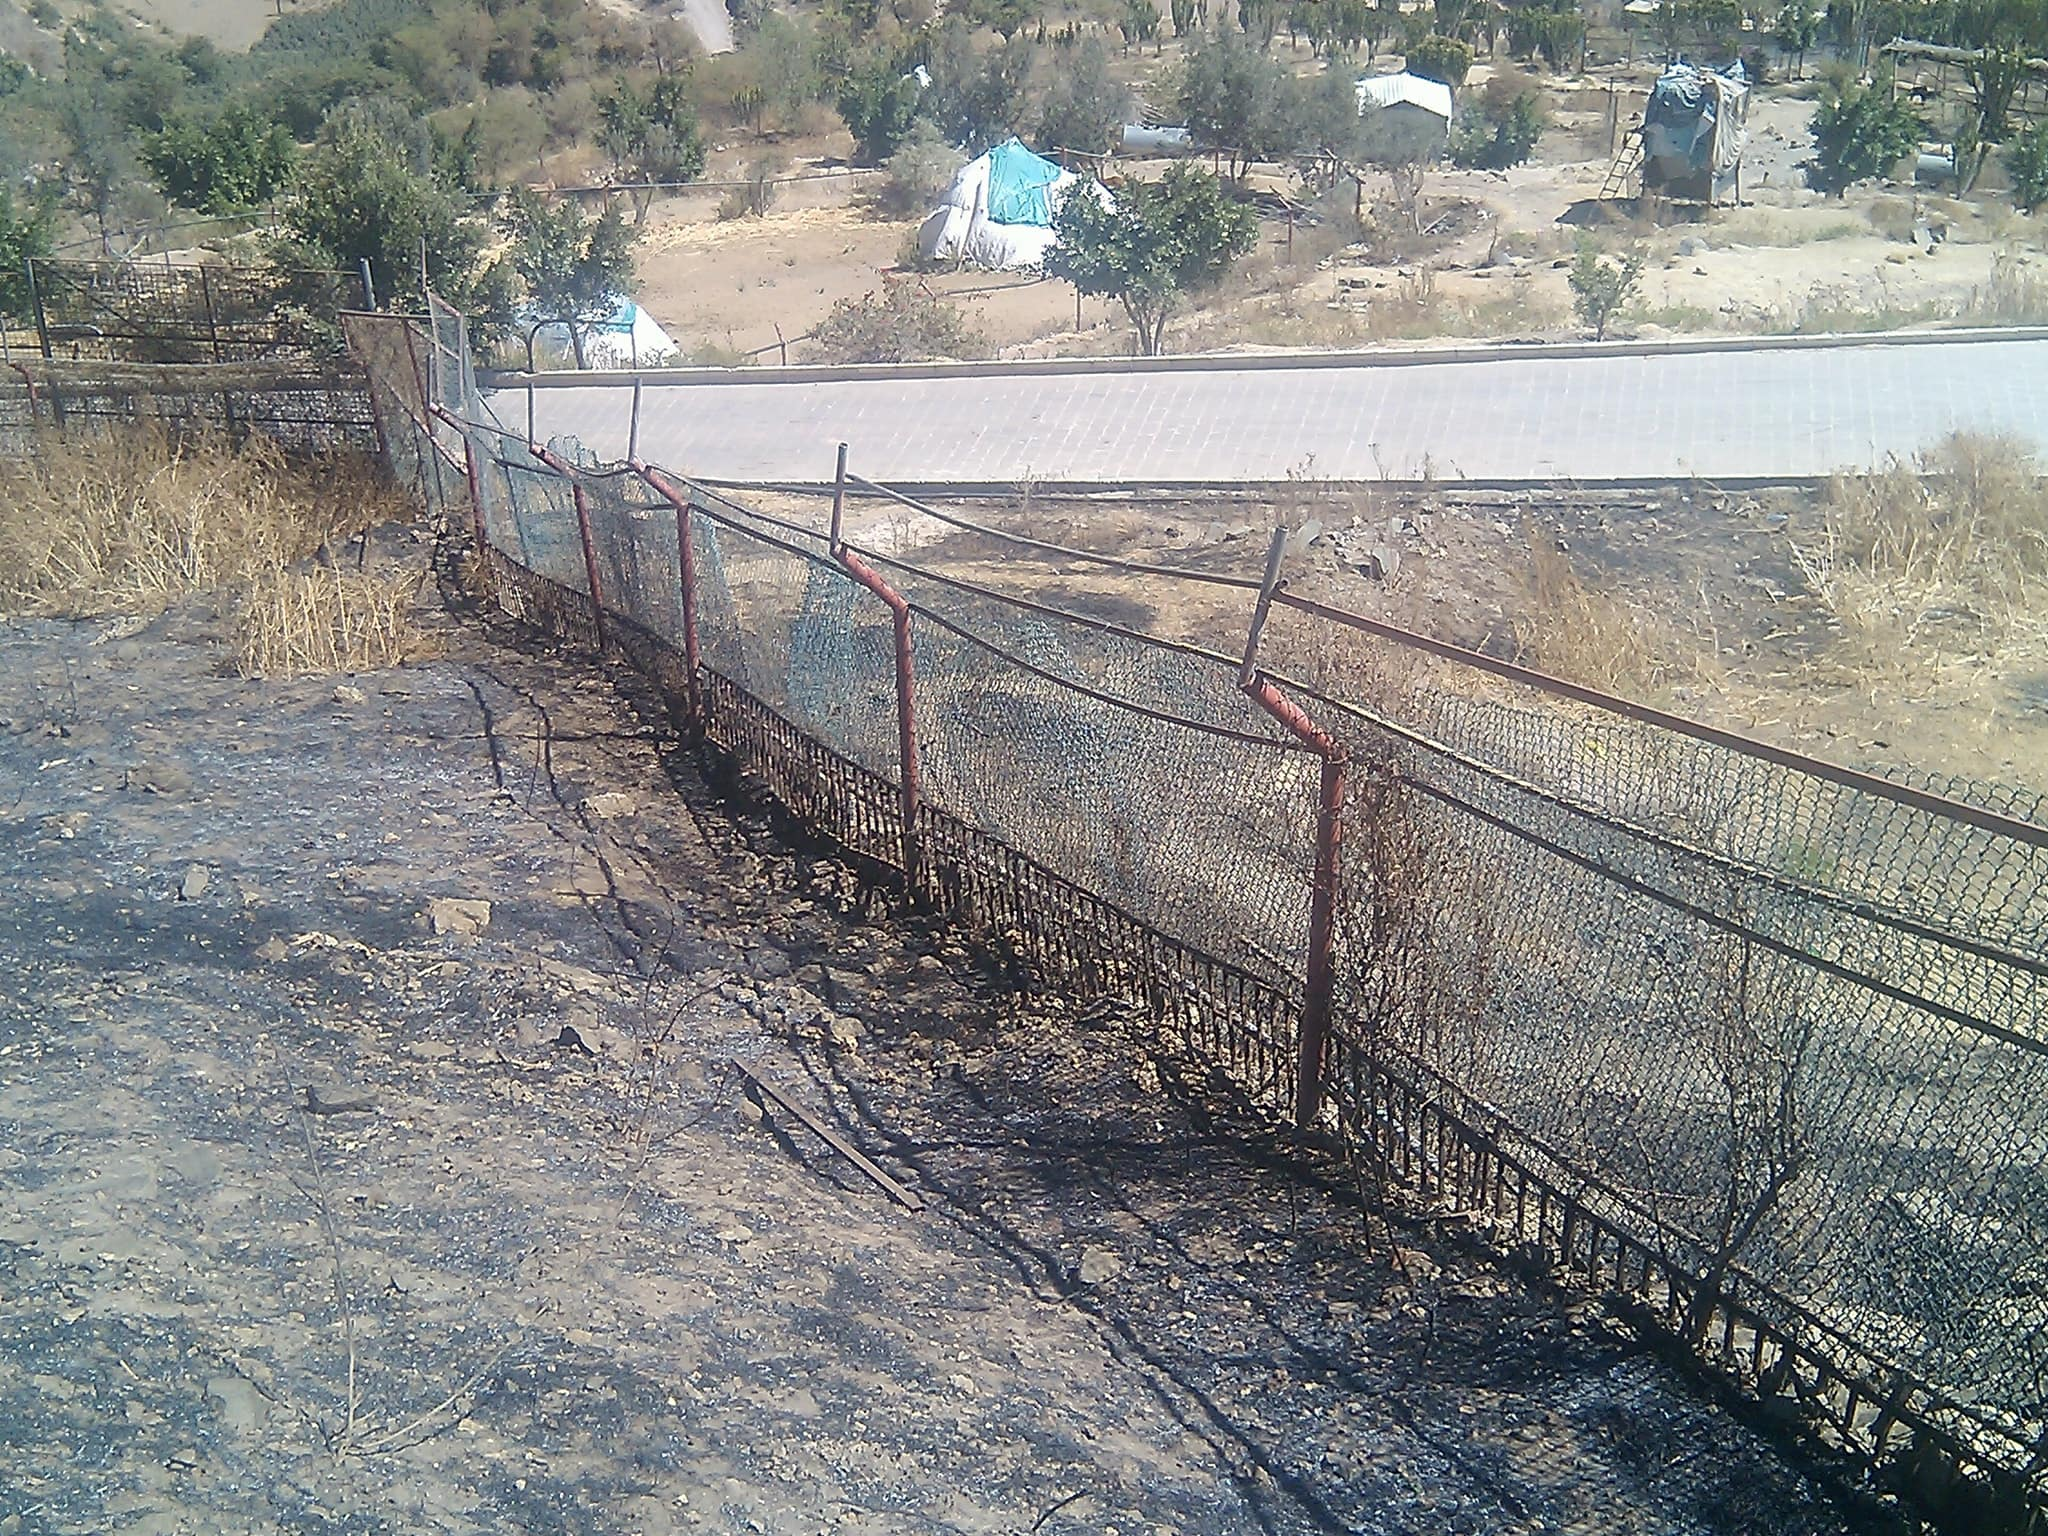 IBB ZOO OPENRANGE FENCING we must repair so we can house the taiz zoo lions pic from haitham 17 FEB 2018.jpg